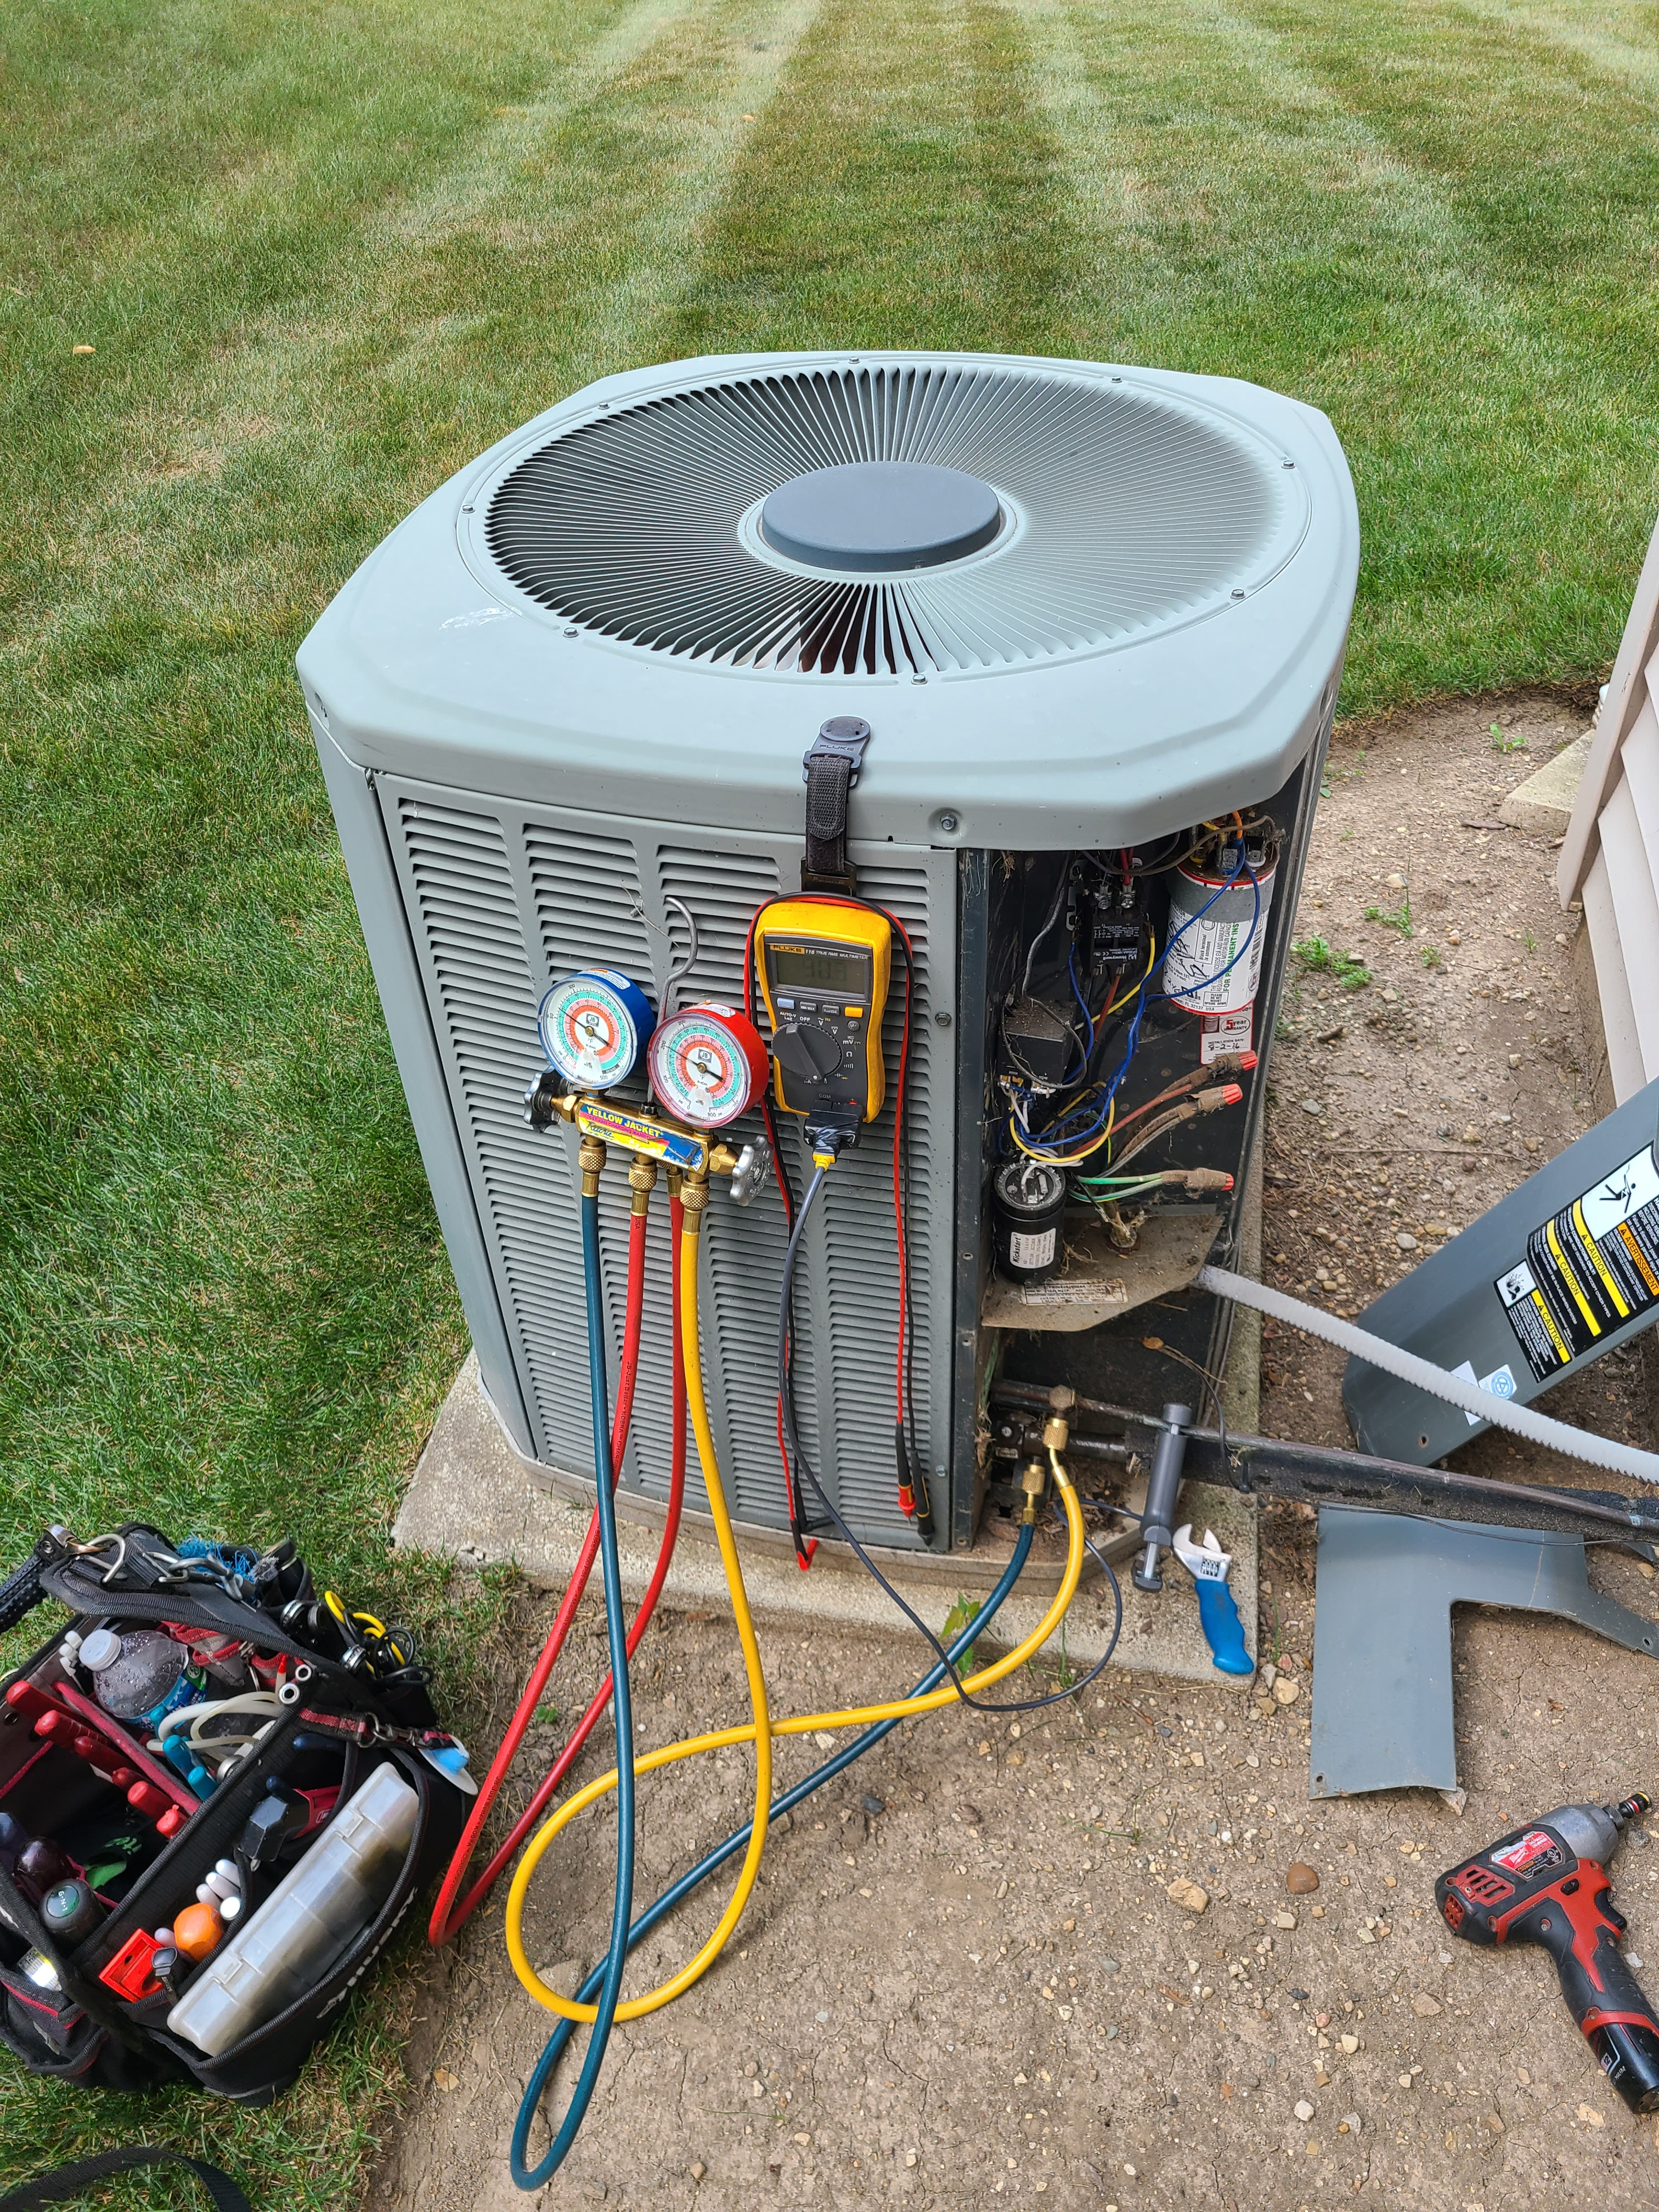 Trane ac summer tune up and maintenance. System cleaned and checked and ready for summer.